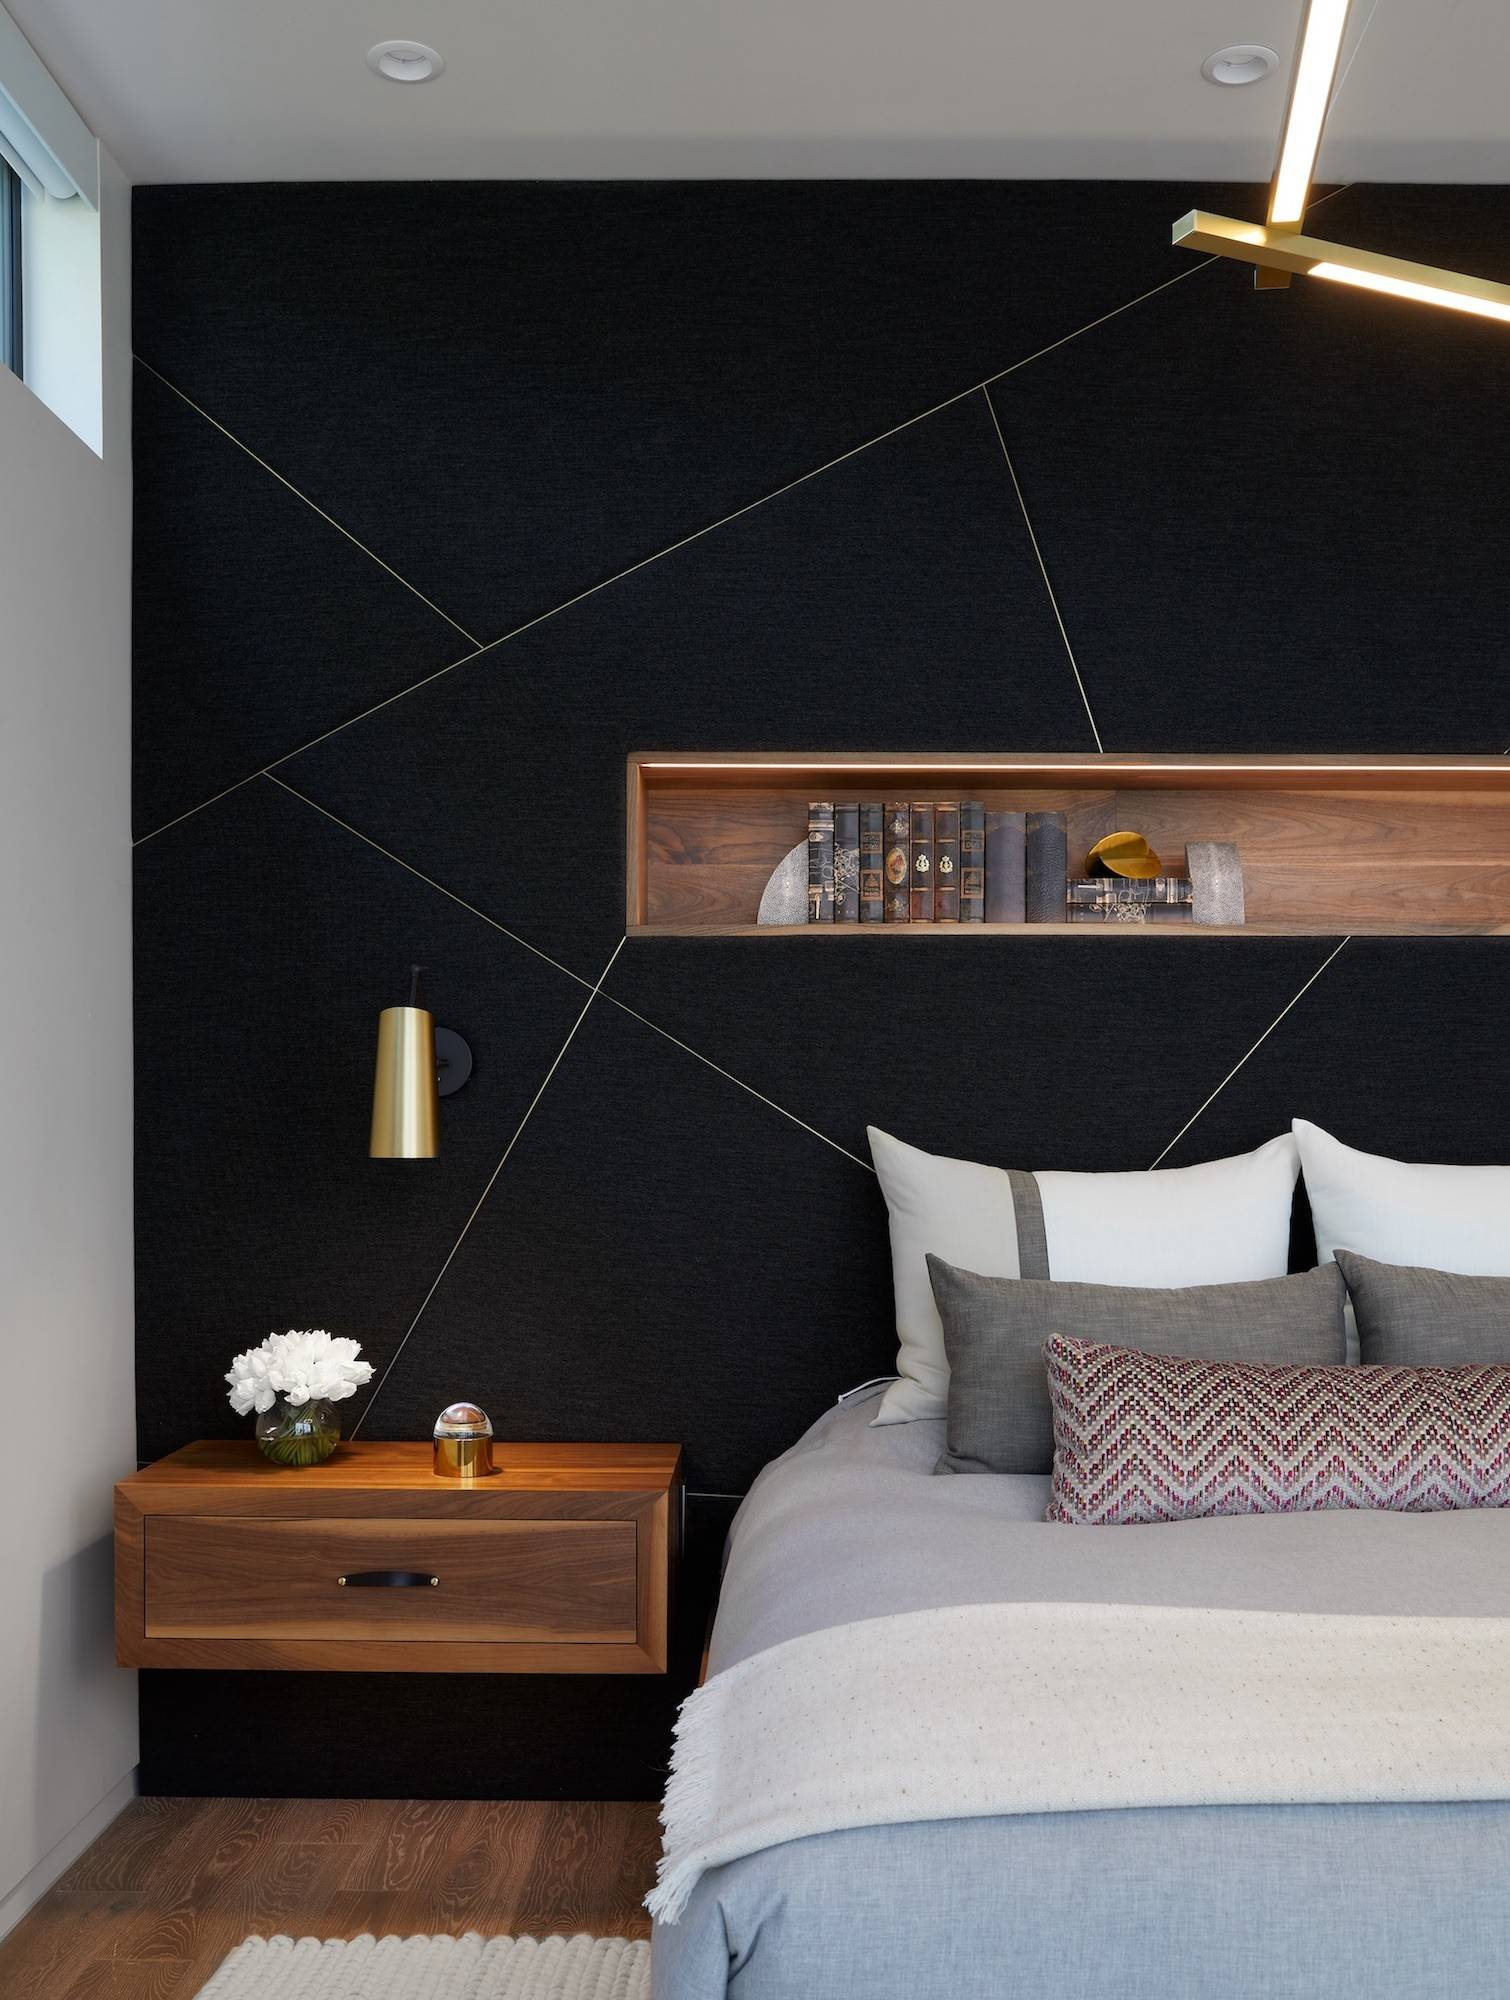 75 Beautiful Bedroom With Black Walls Pictures Ideas March 2021 Houzz